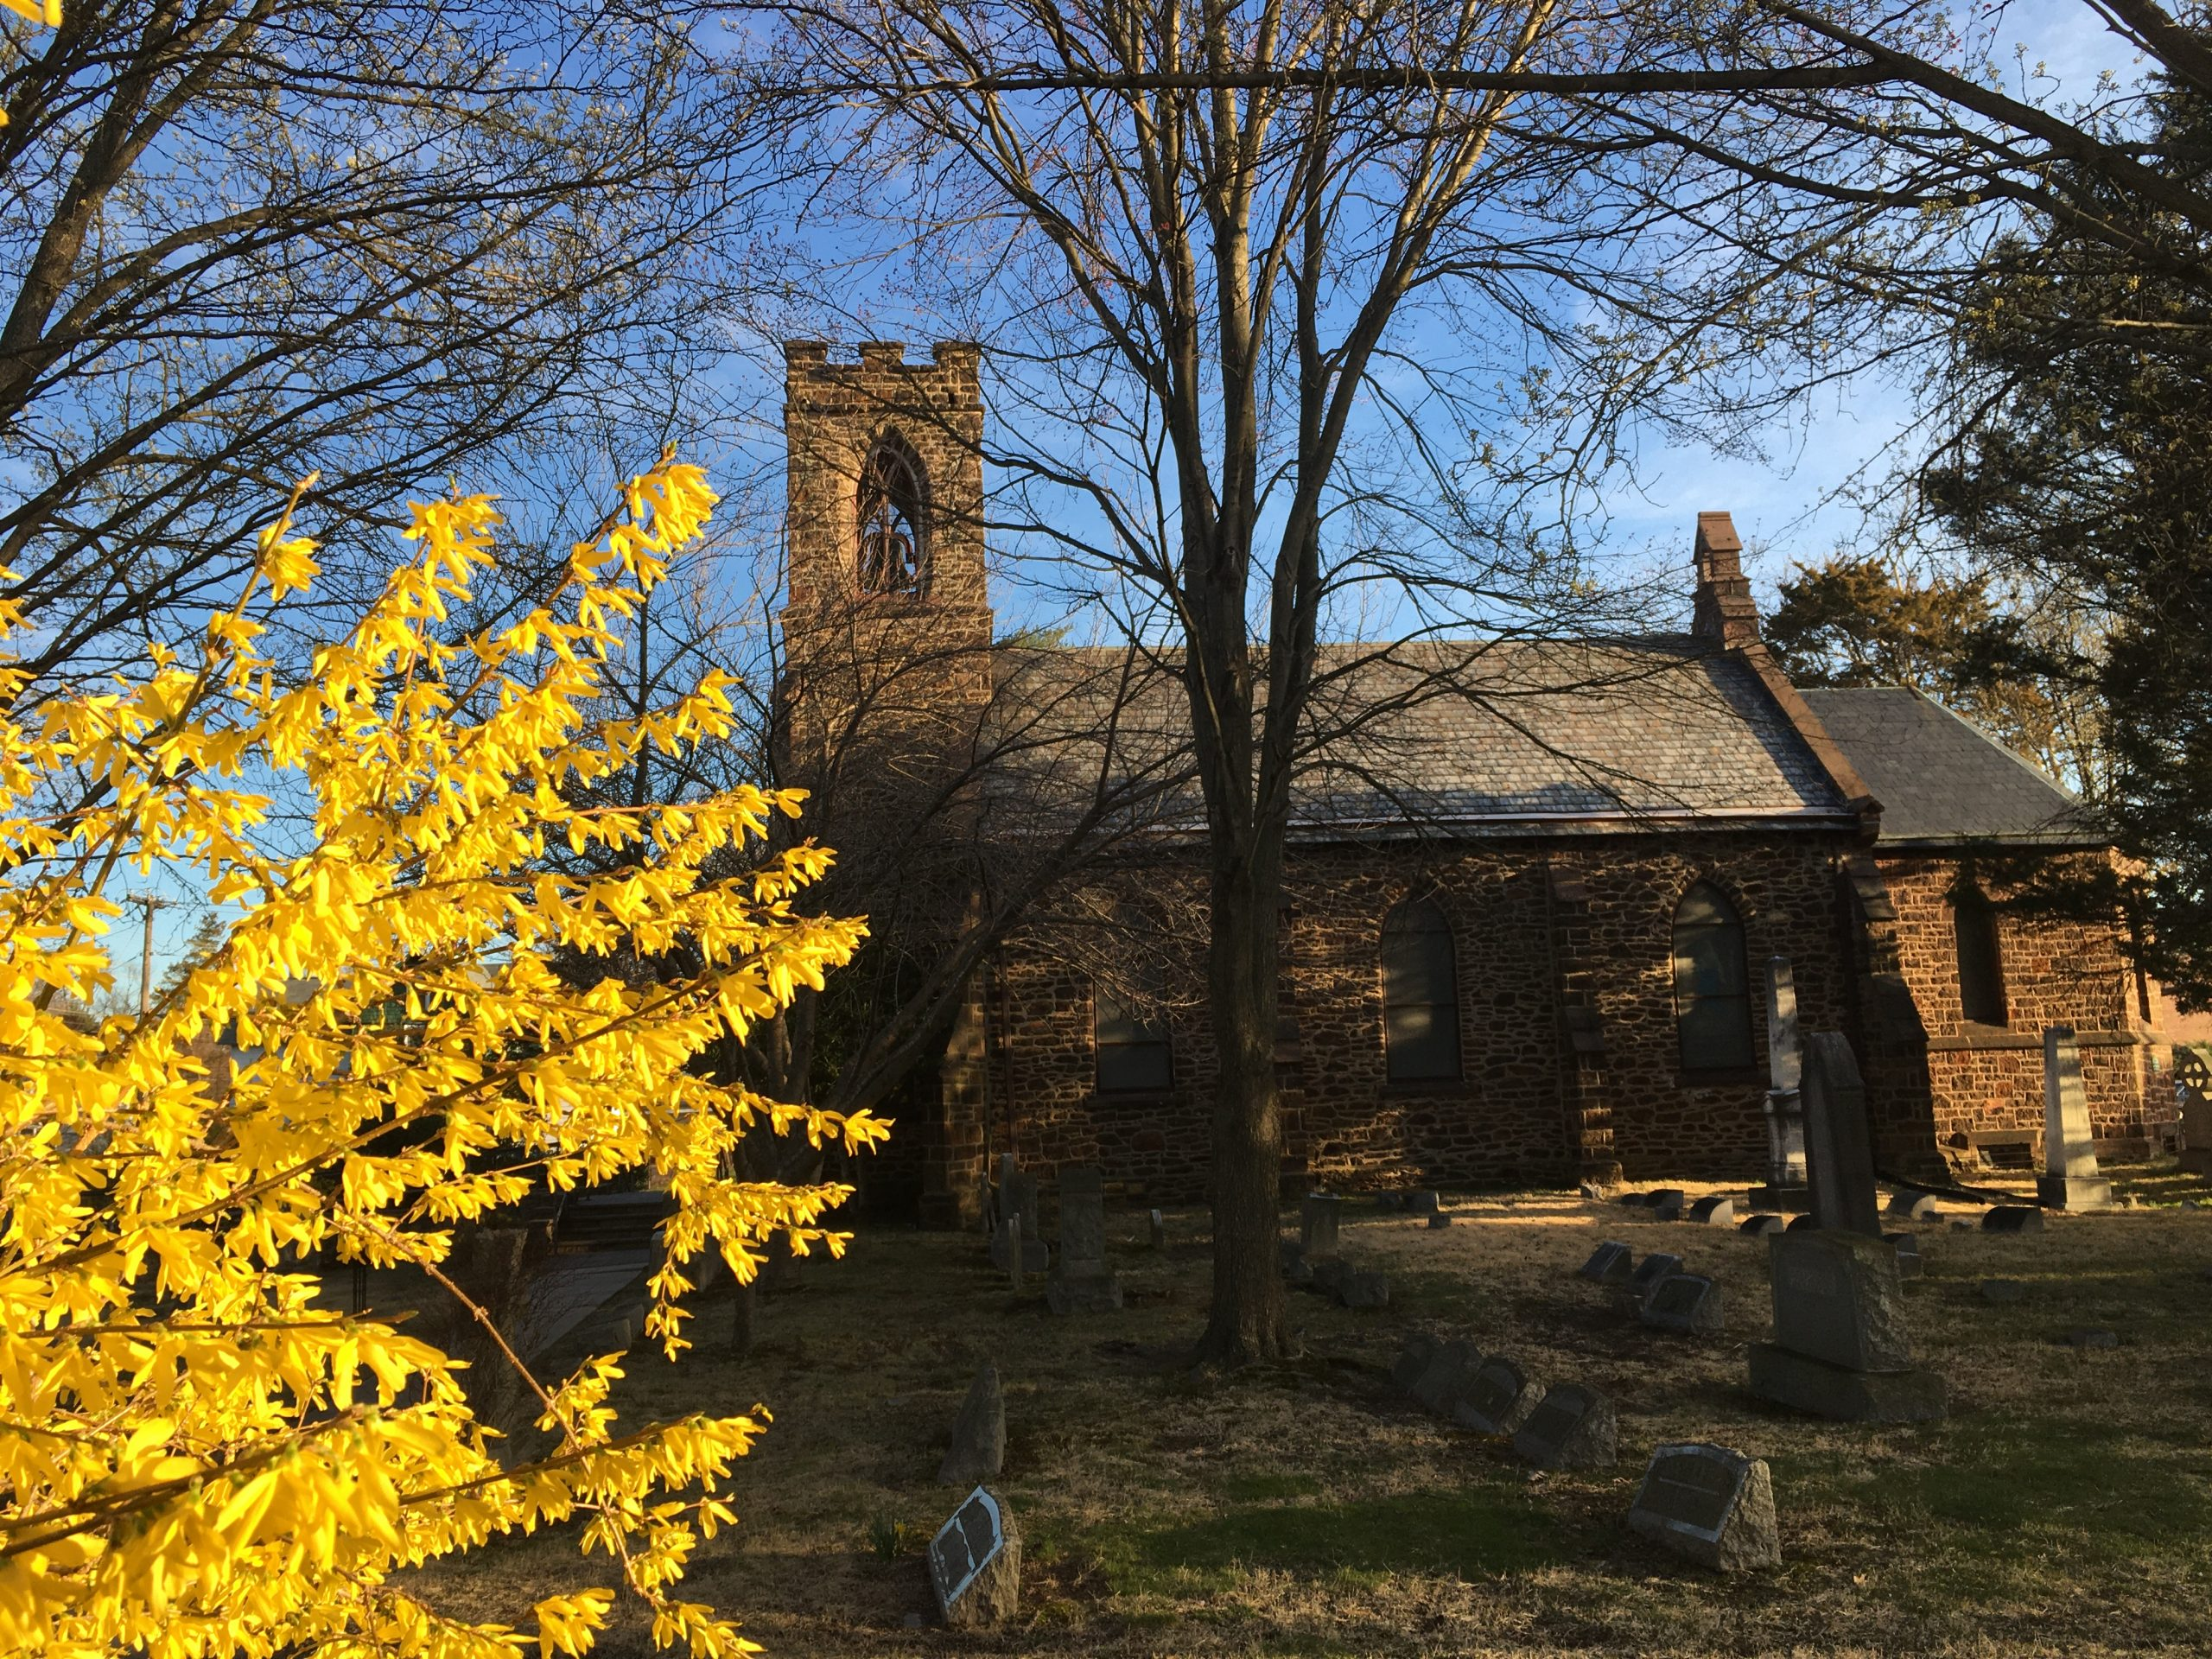 St. Thomas' in early spring!